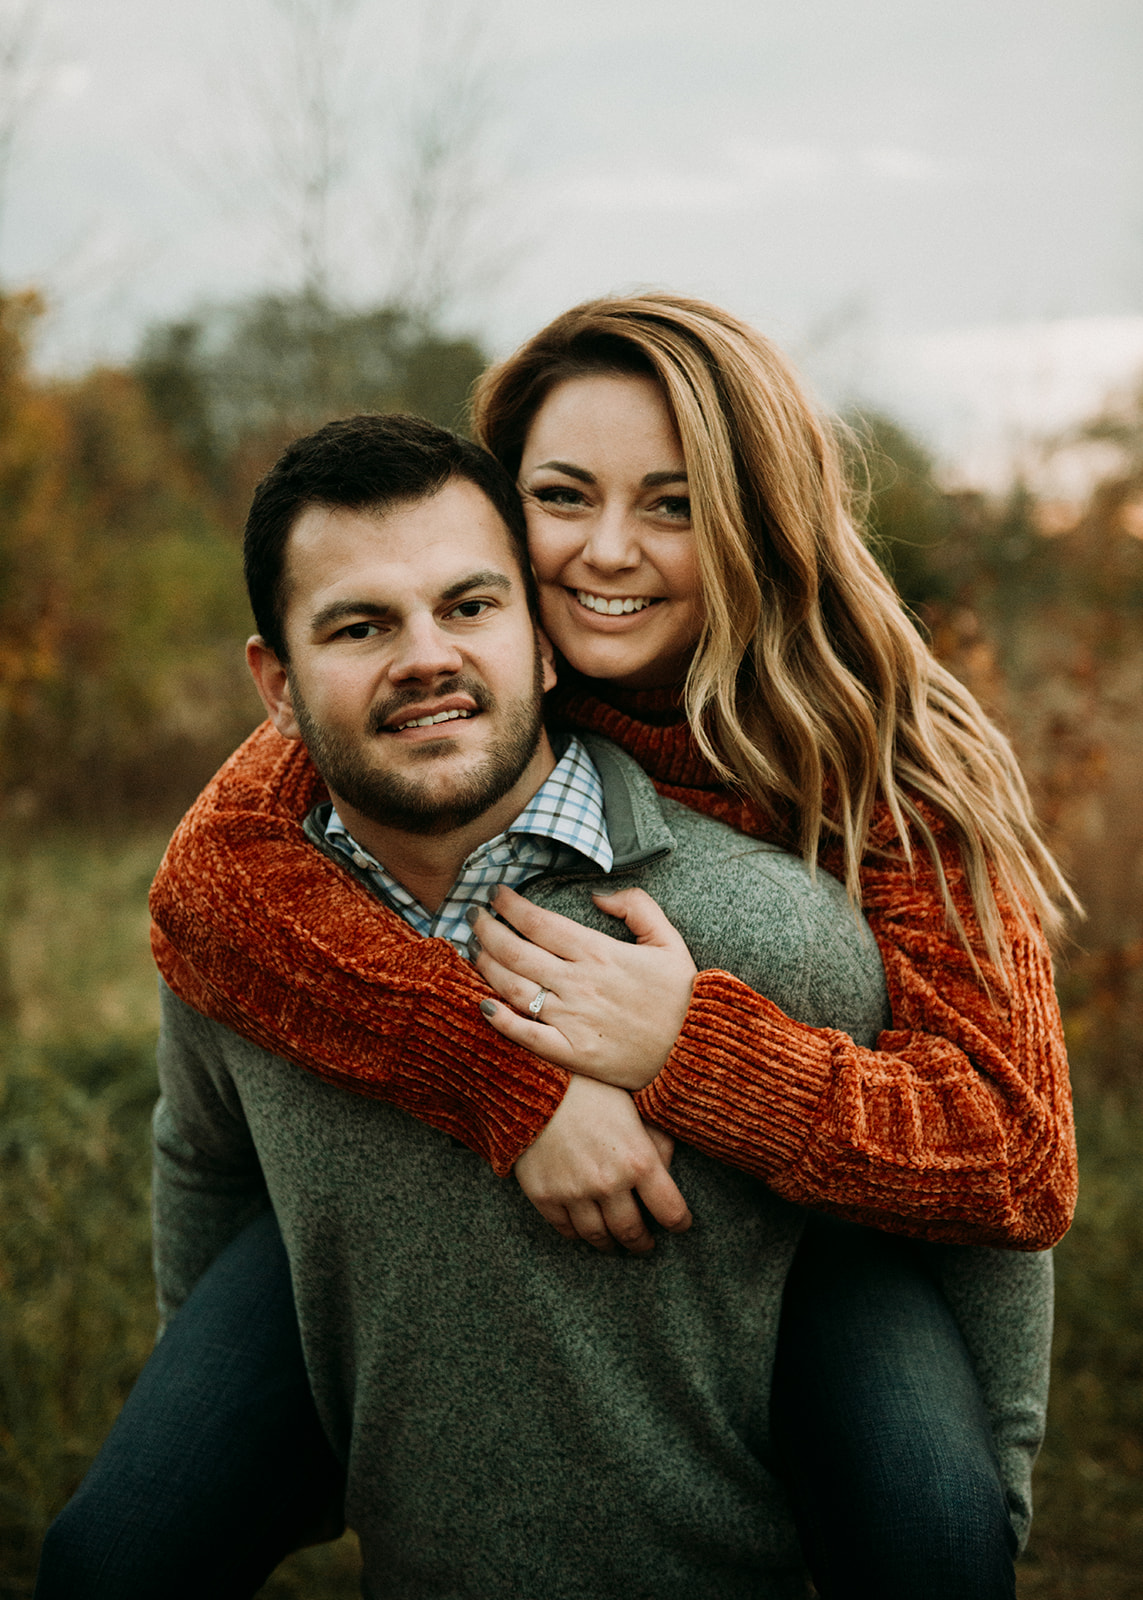 Julie+Matt_Engagements79.jpg